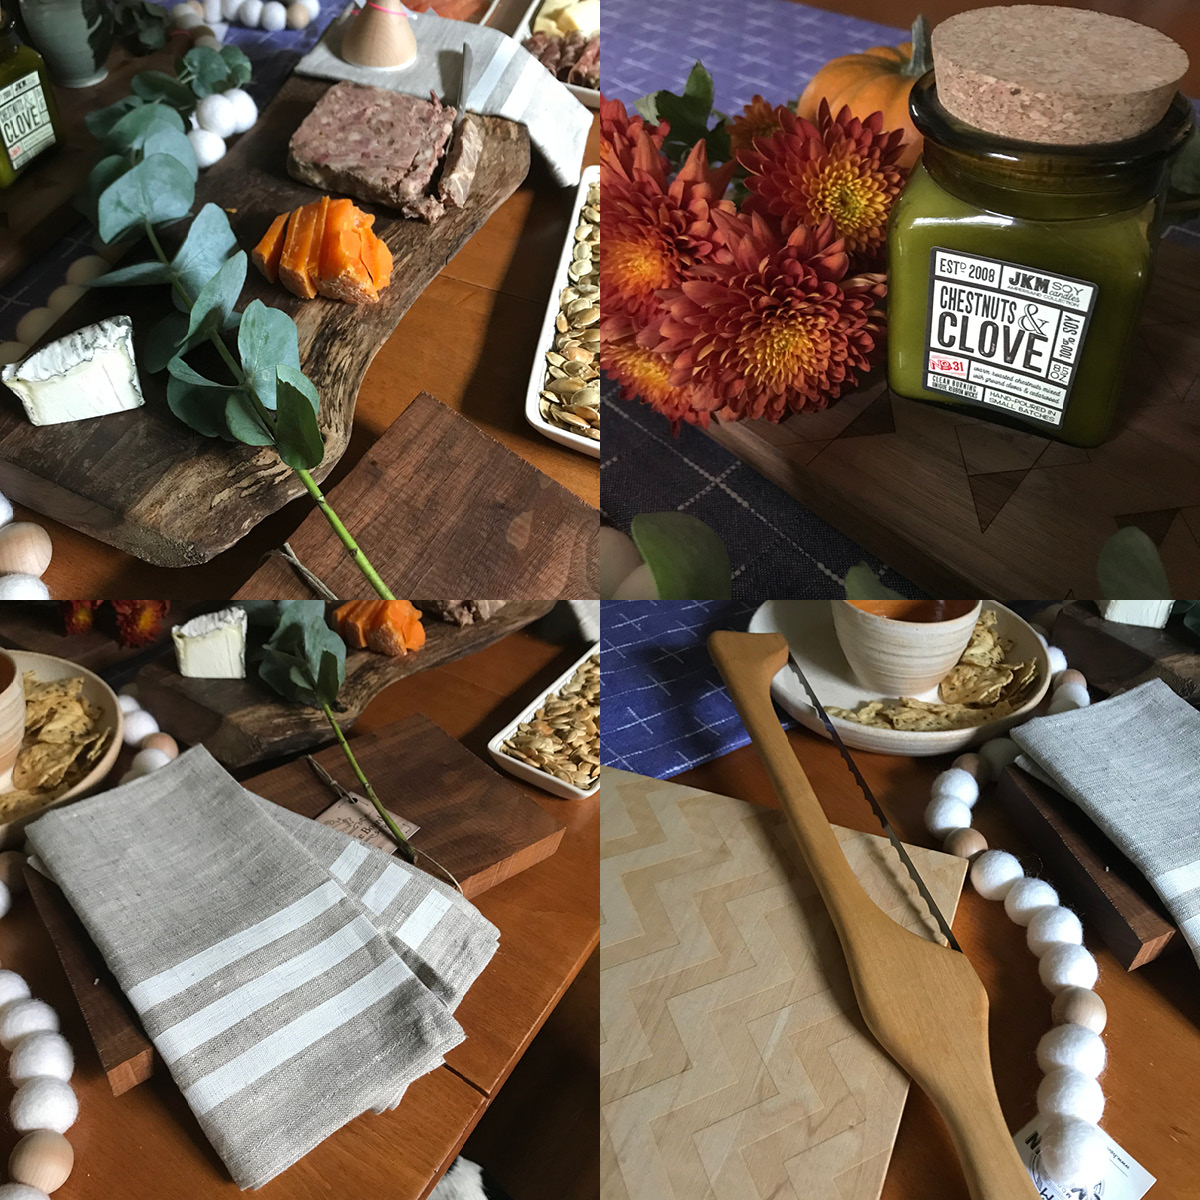 wooden charcuterie board, candle, bread knife, linen napkin, pumpkin seeds, chip and dip